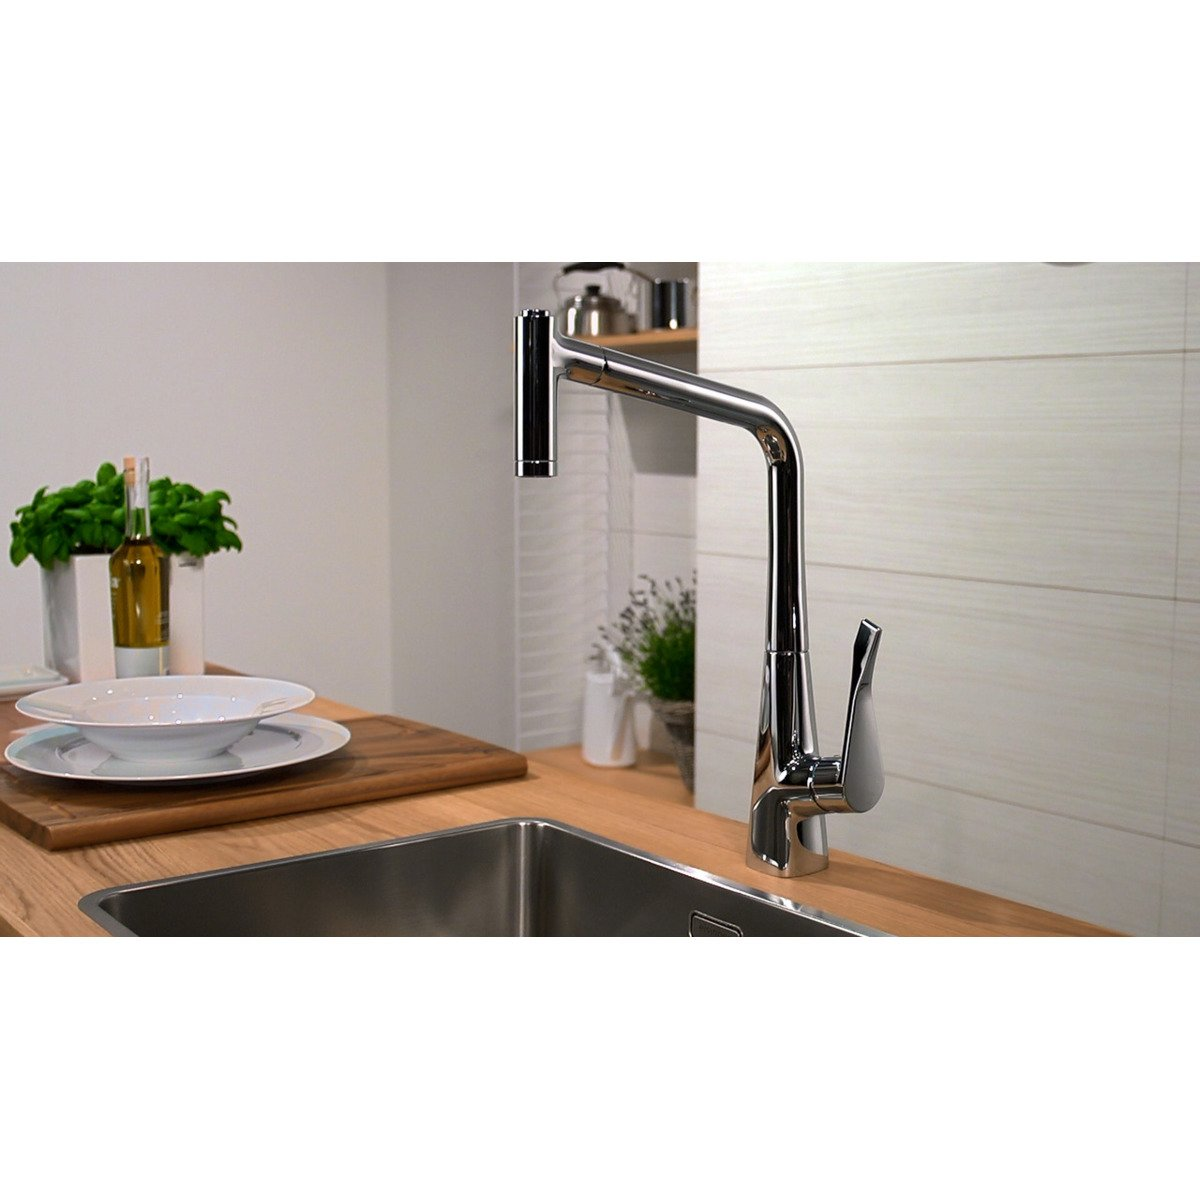 hansgrohe metris robinet de cuisine avec douchette extractible chrome 14820000. Black Bedroom Furniture Sets. Home Design Ideas